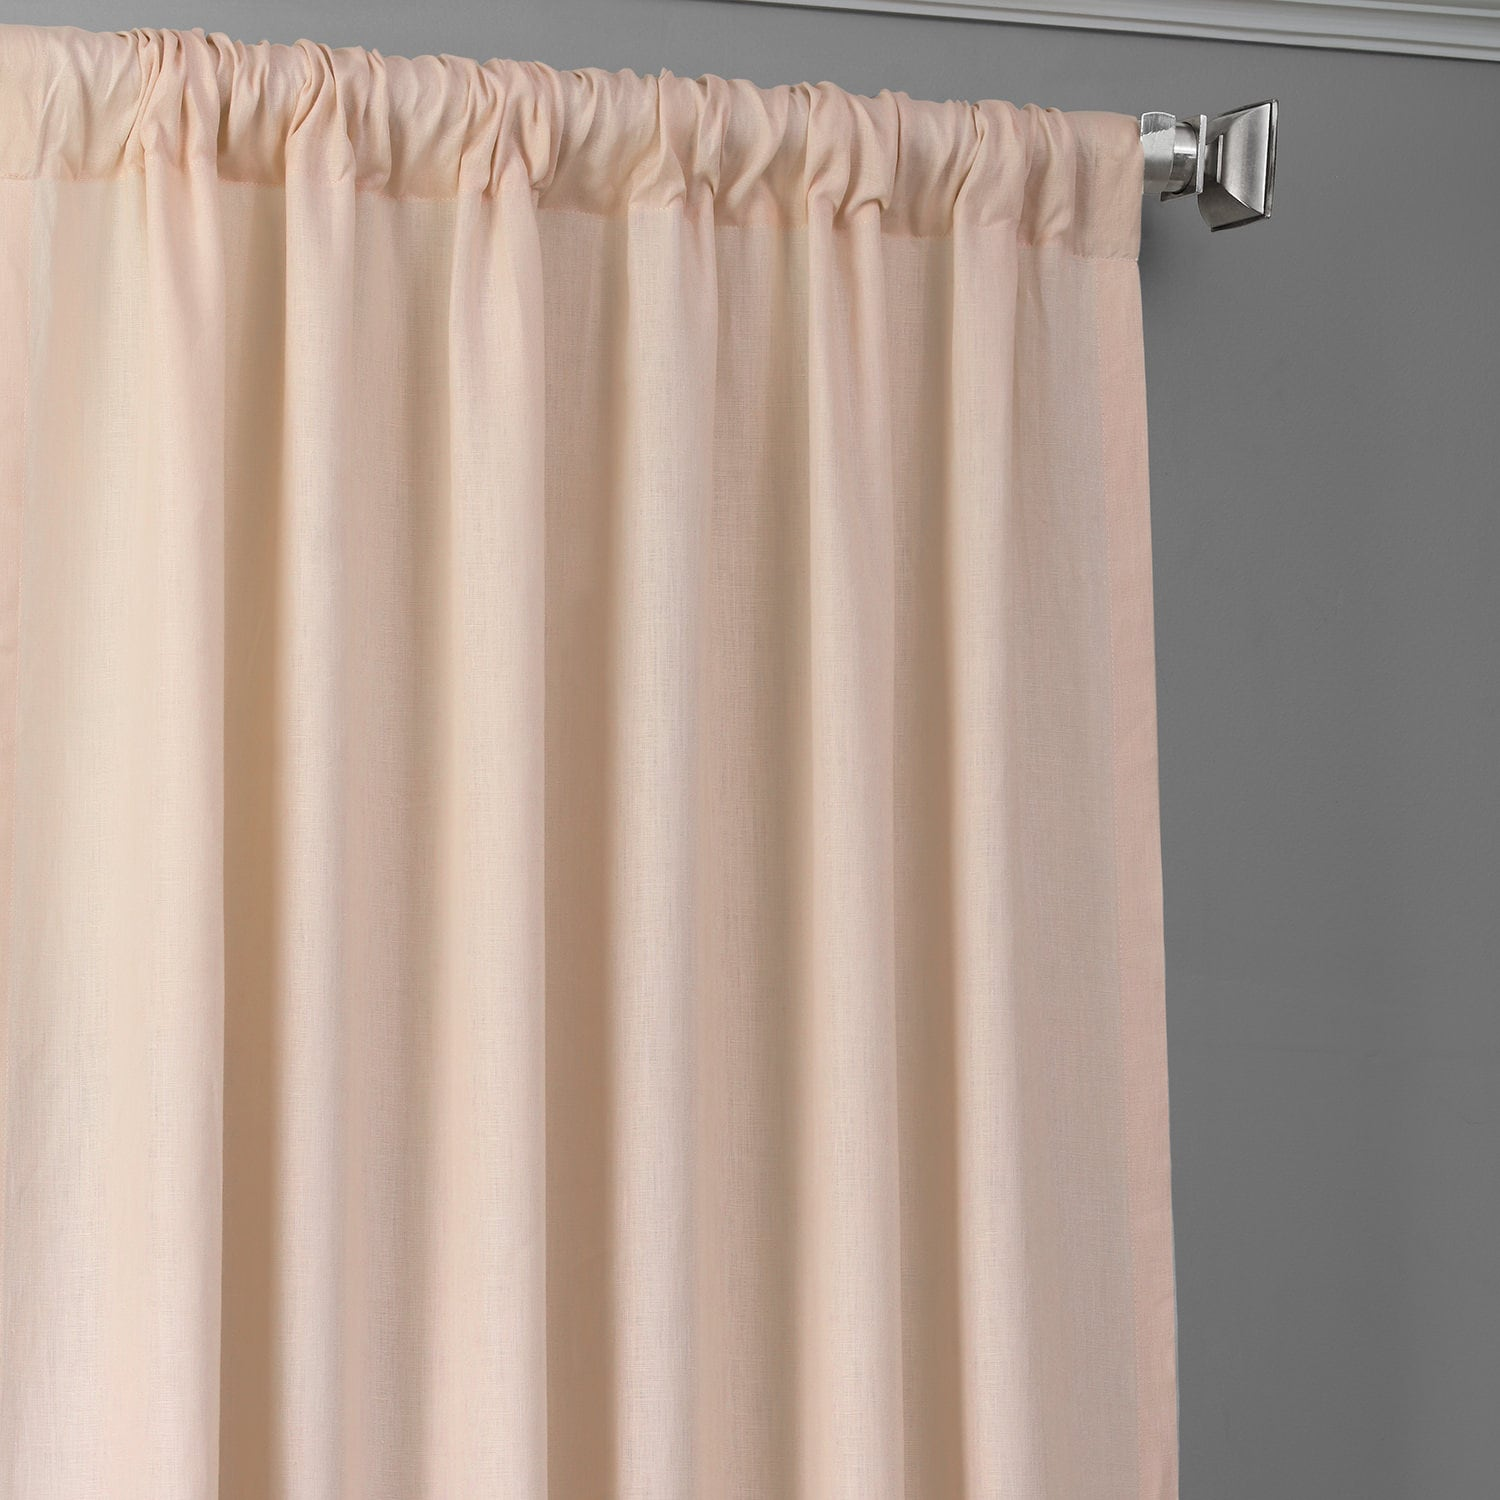 Signature Cherry Blossom Pink Linen Sheer Curtain